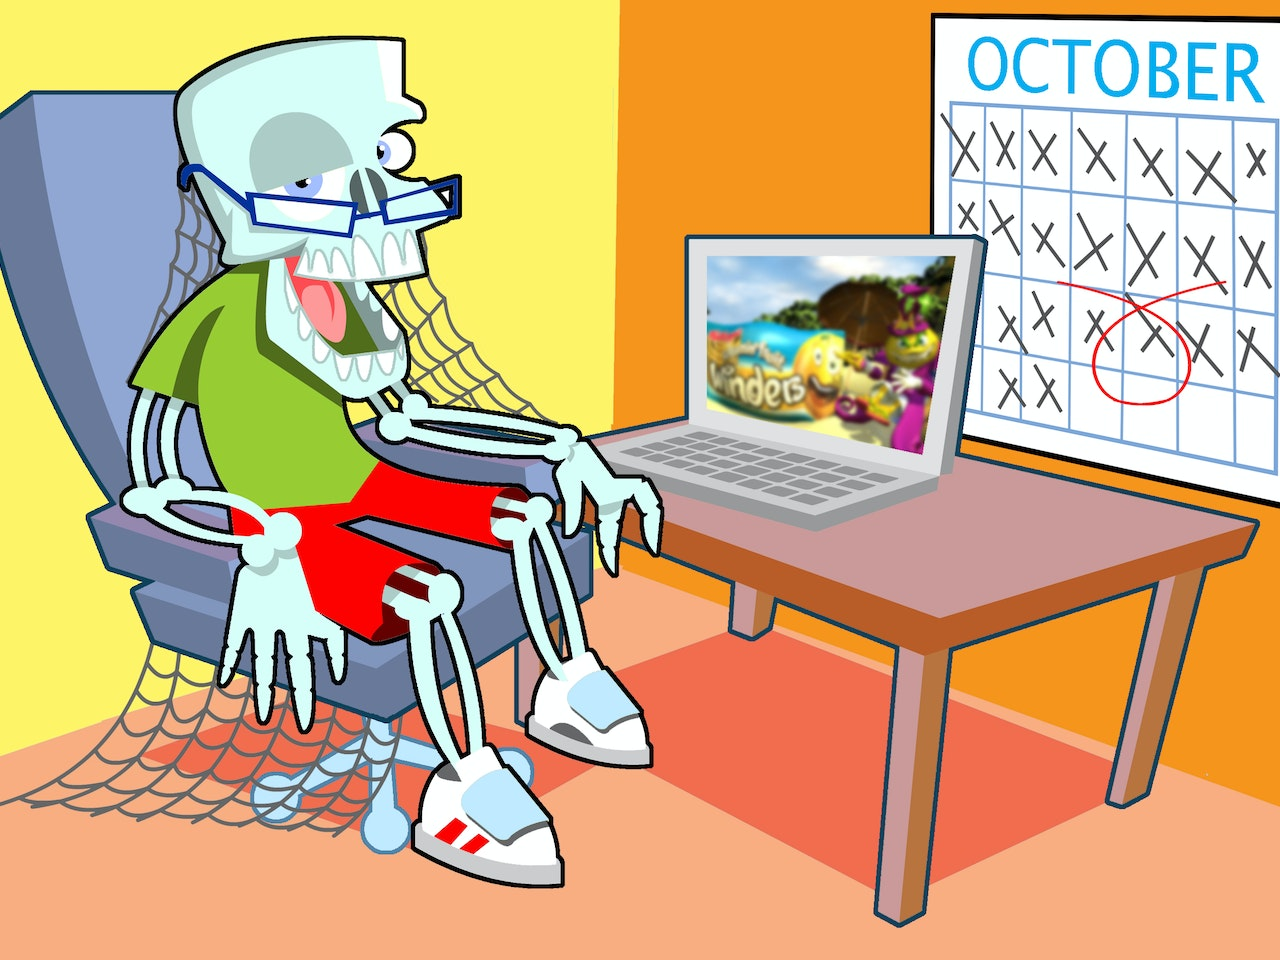 funny happy humorous comical colourful graphic cartoon anime skeleton cobwebs internet online browsing streaming social network profile  facebook